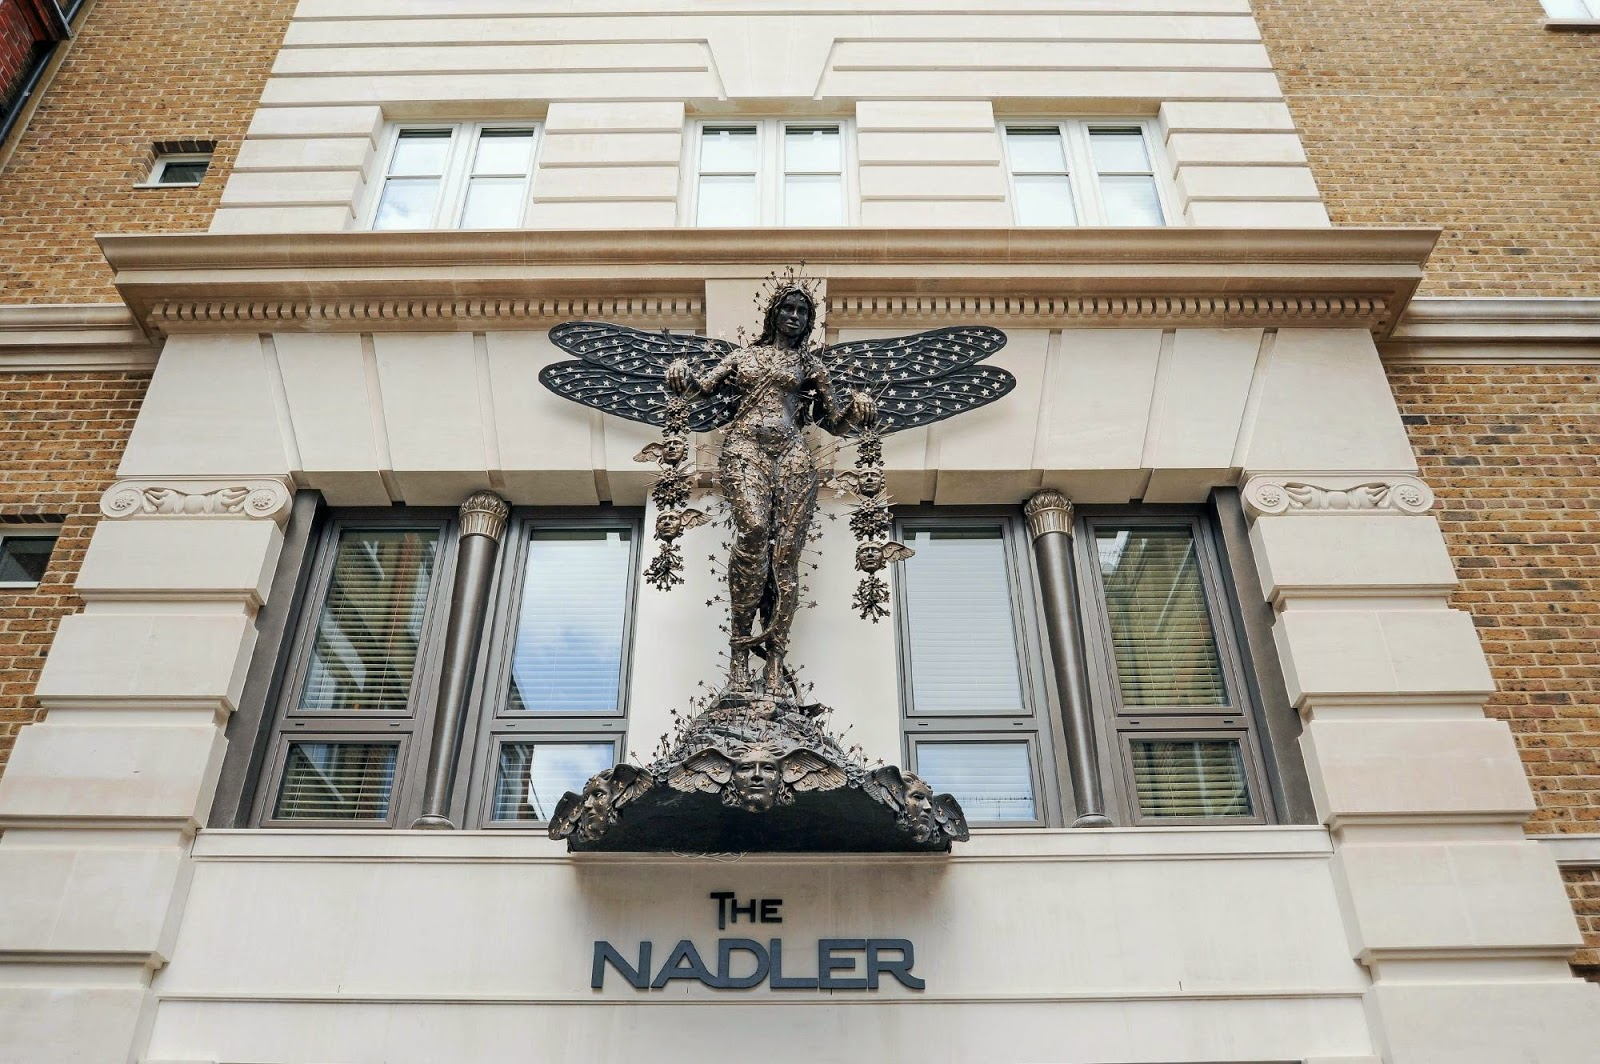 The Nadler Hotel Soho